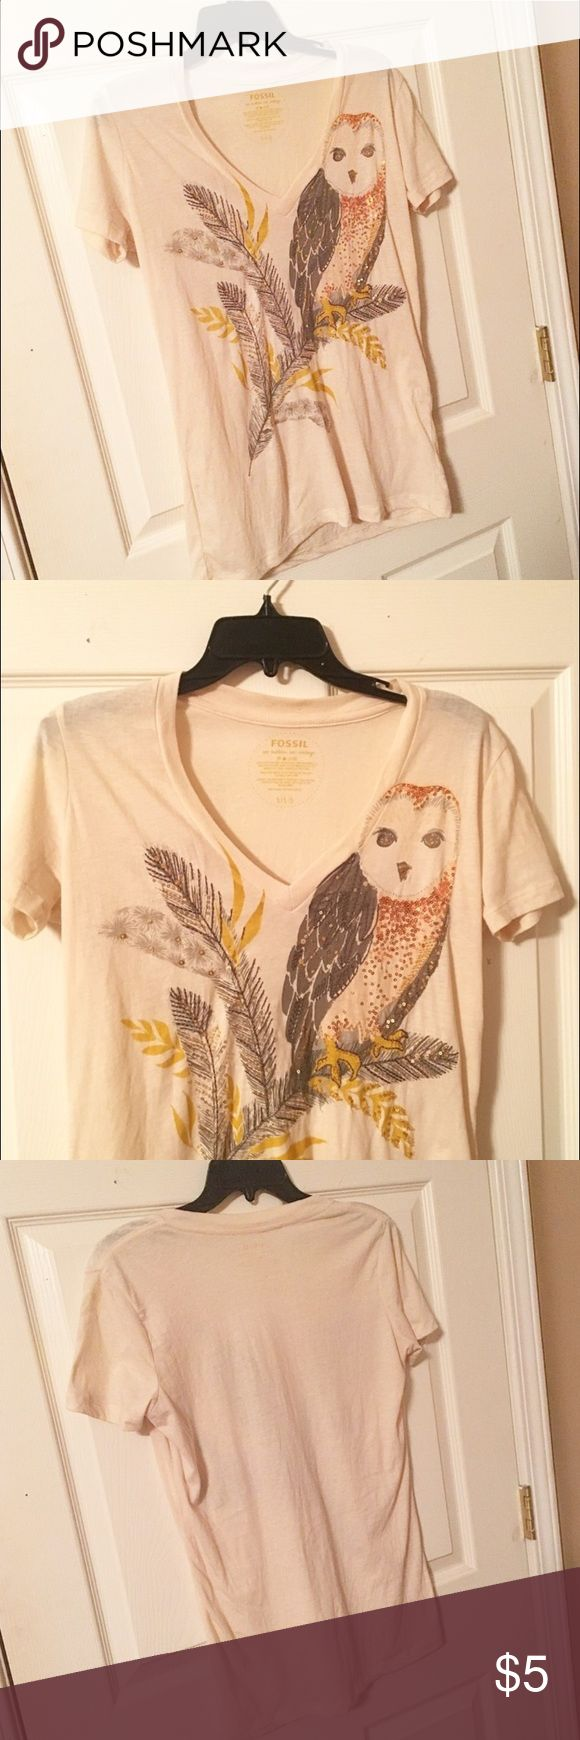 Fossil Owl T-Shirt Women's cream colored Fossil tee with owl design on it. Shirt design has beads and is very colorful! Lightweight material - great for spring! Warn twice and still in great condition! Authentic. No trades! Fossil Tops Tees - Short Sleeve